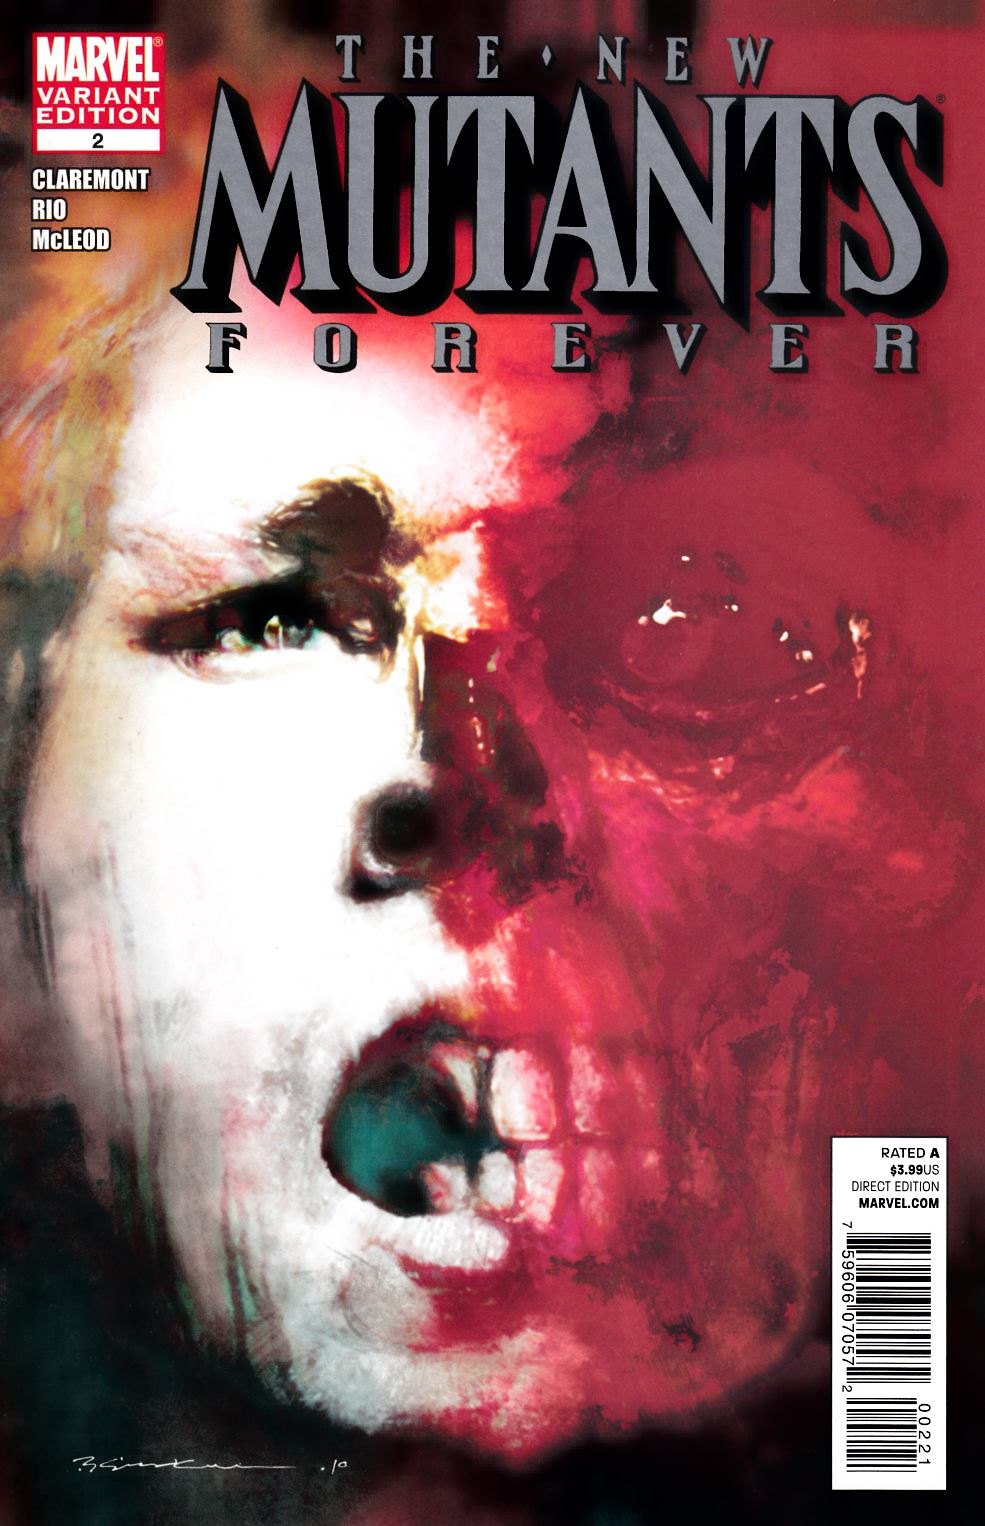 New Mutants Forever #2 Sienkiewicz Variant Cover [Marvel Comic]